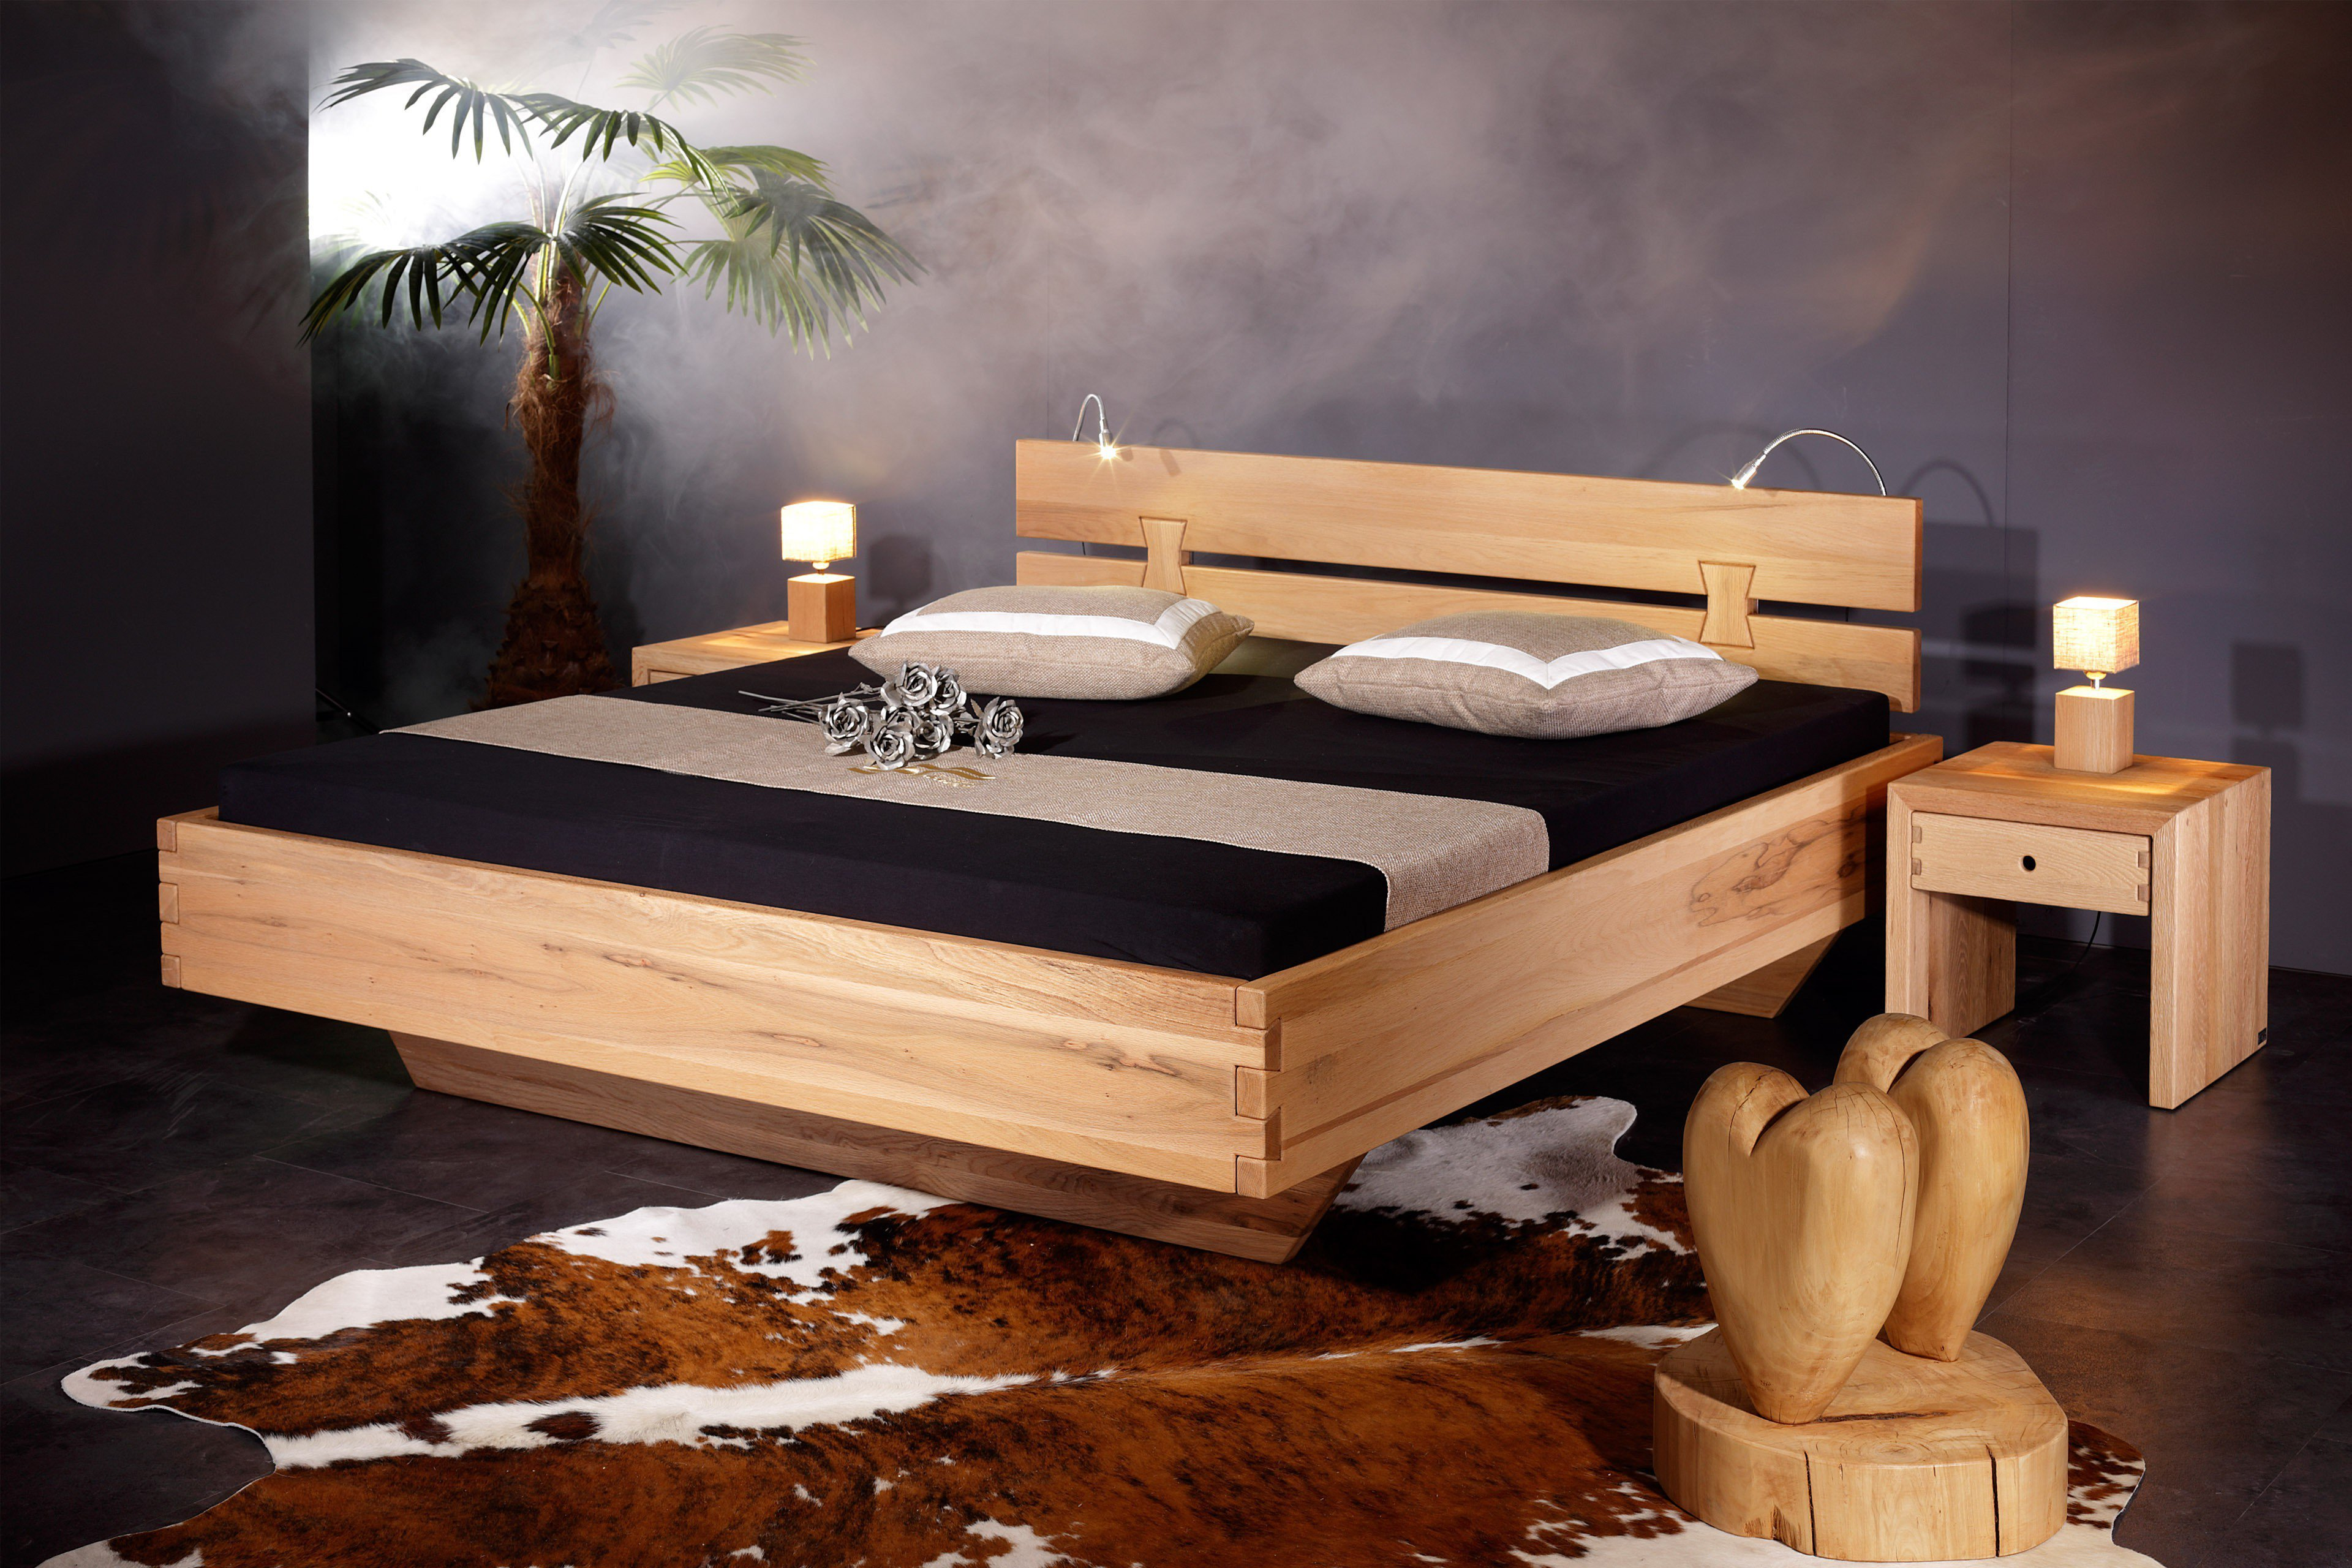 sprenger bett rosenheim sumpfeiche ge lt m bel letz ihr online shop. Black Bedroom Furniture Sets. Home Design Ideas